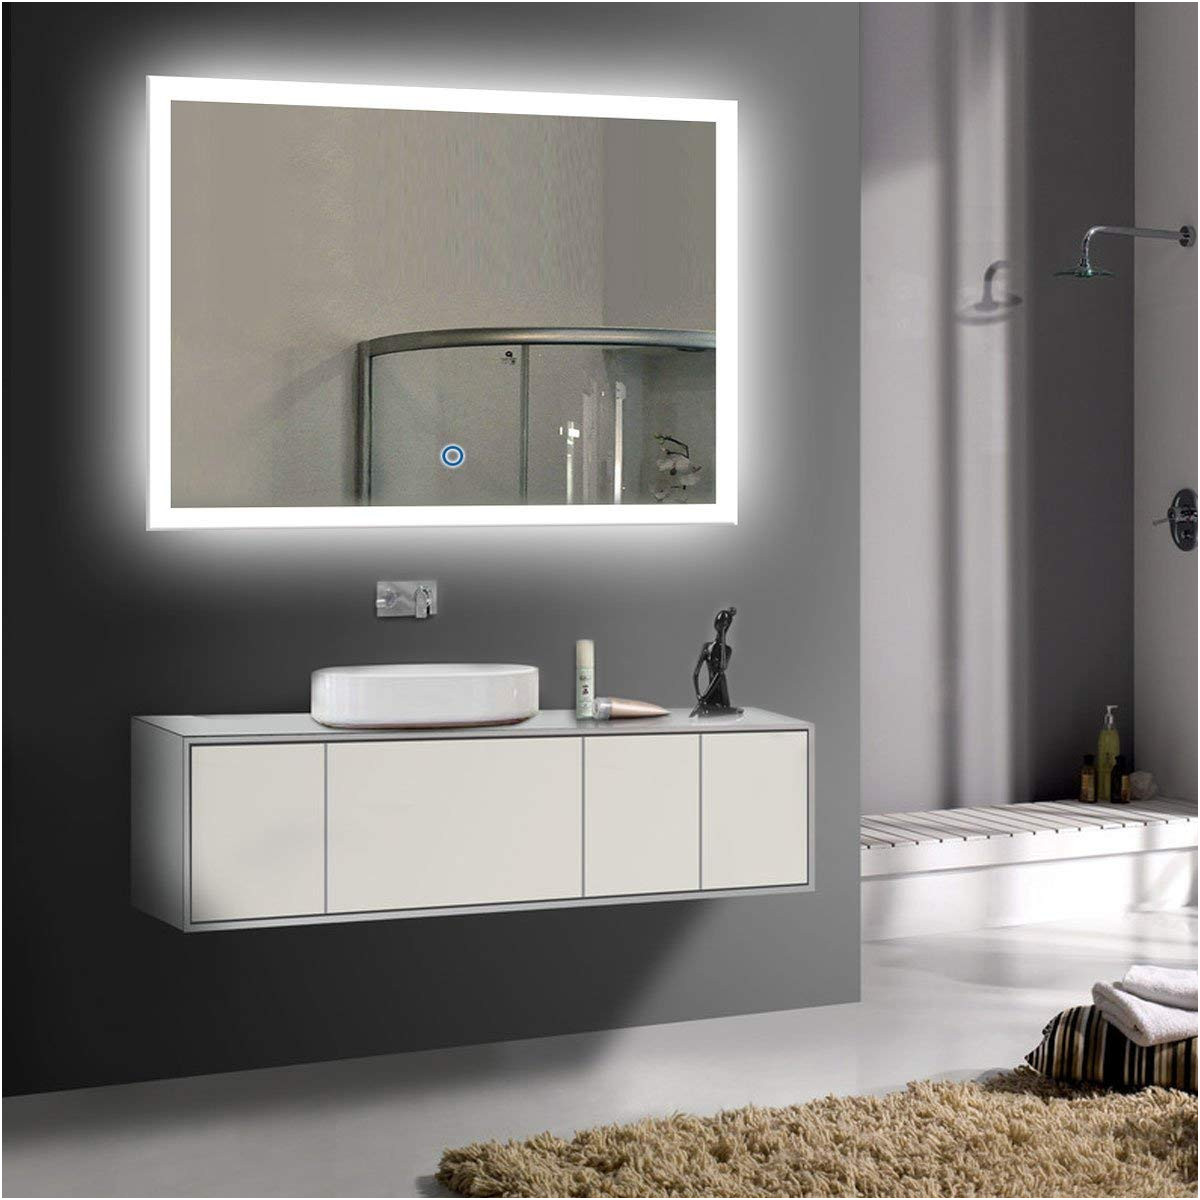 Luxury Bathroom Wall Mirrors No Frame